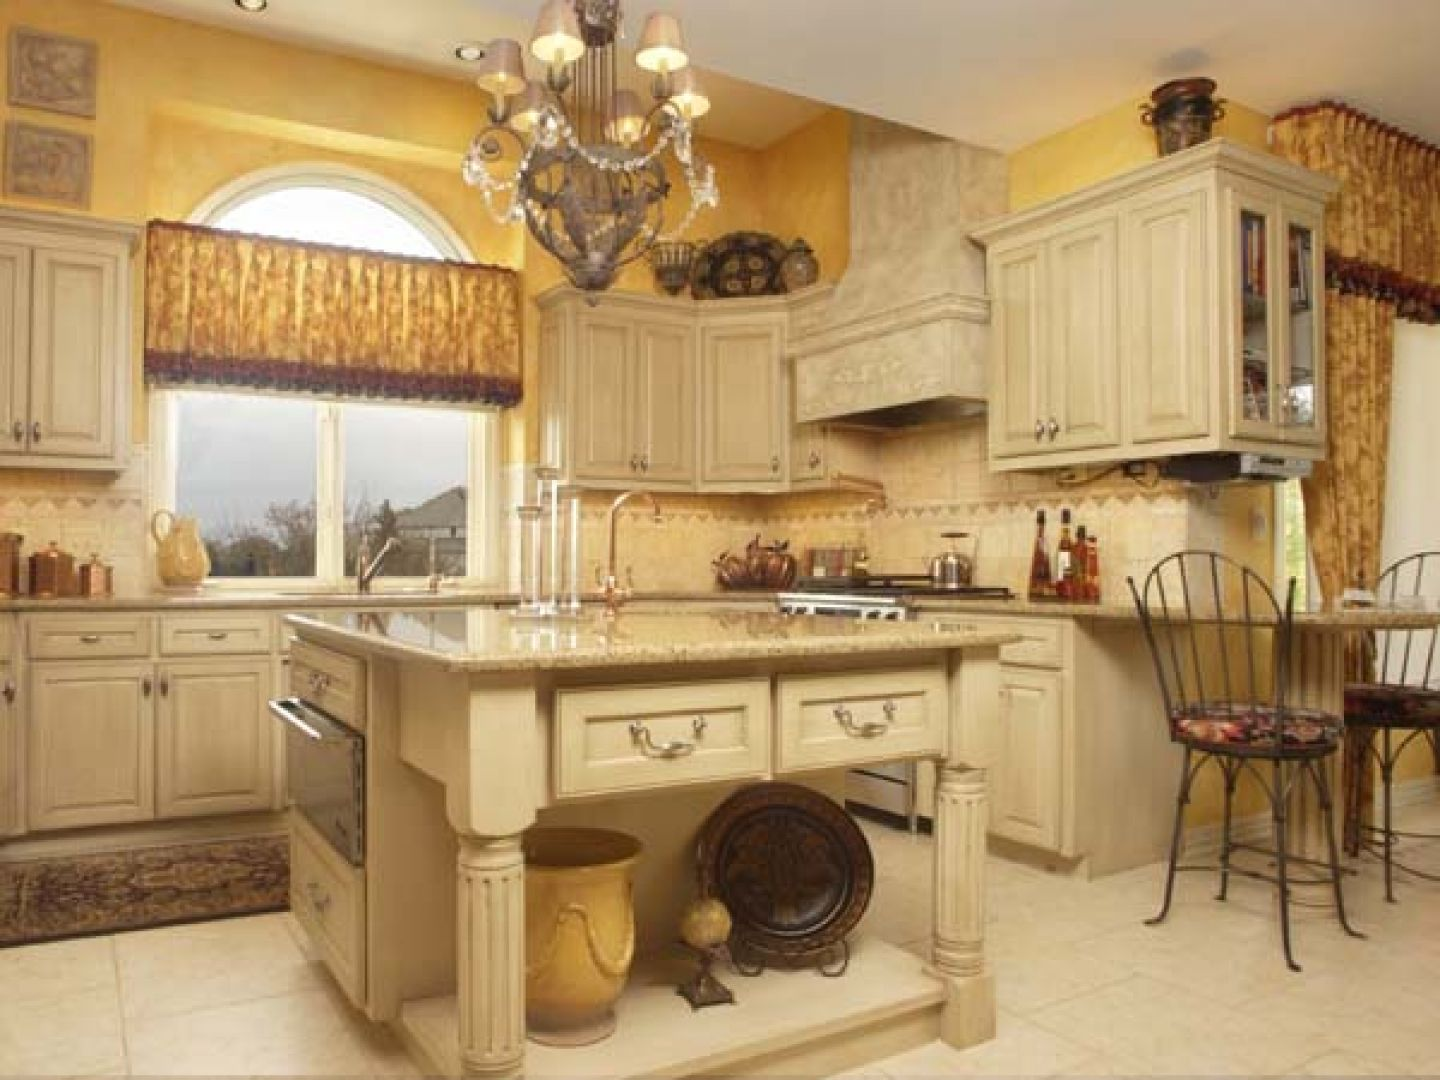 Tuscany kitchen would change wall color with - Country style kitchen cabinets design ...